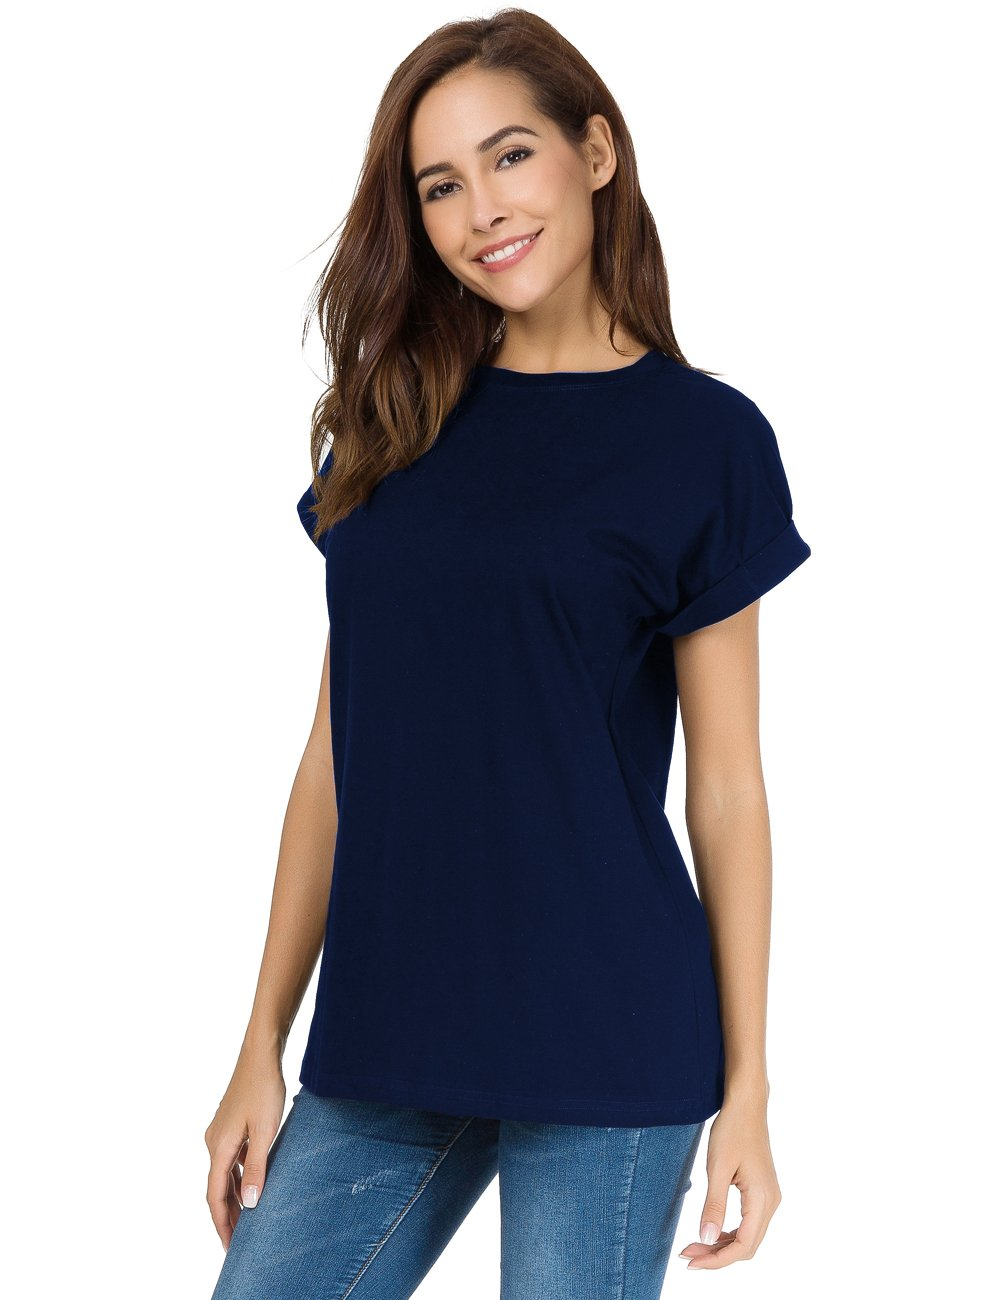 LUSMAY Womens Short Sleeve Loose Fitting T Shirts Cotton Casual Tops